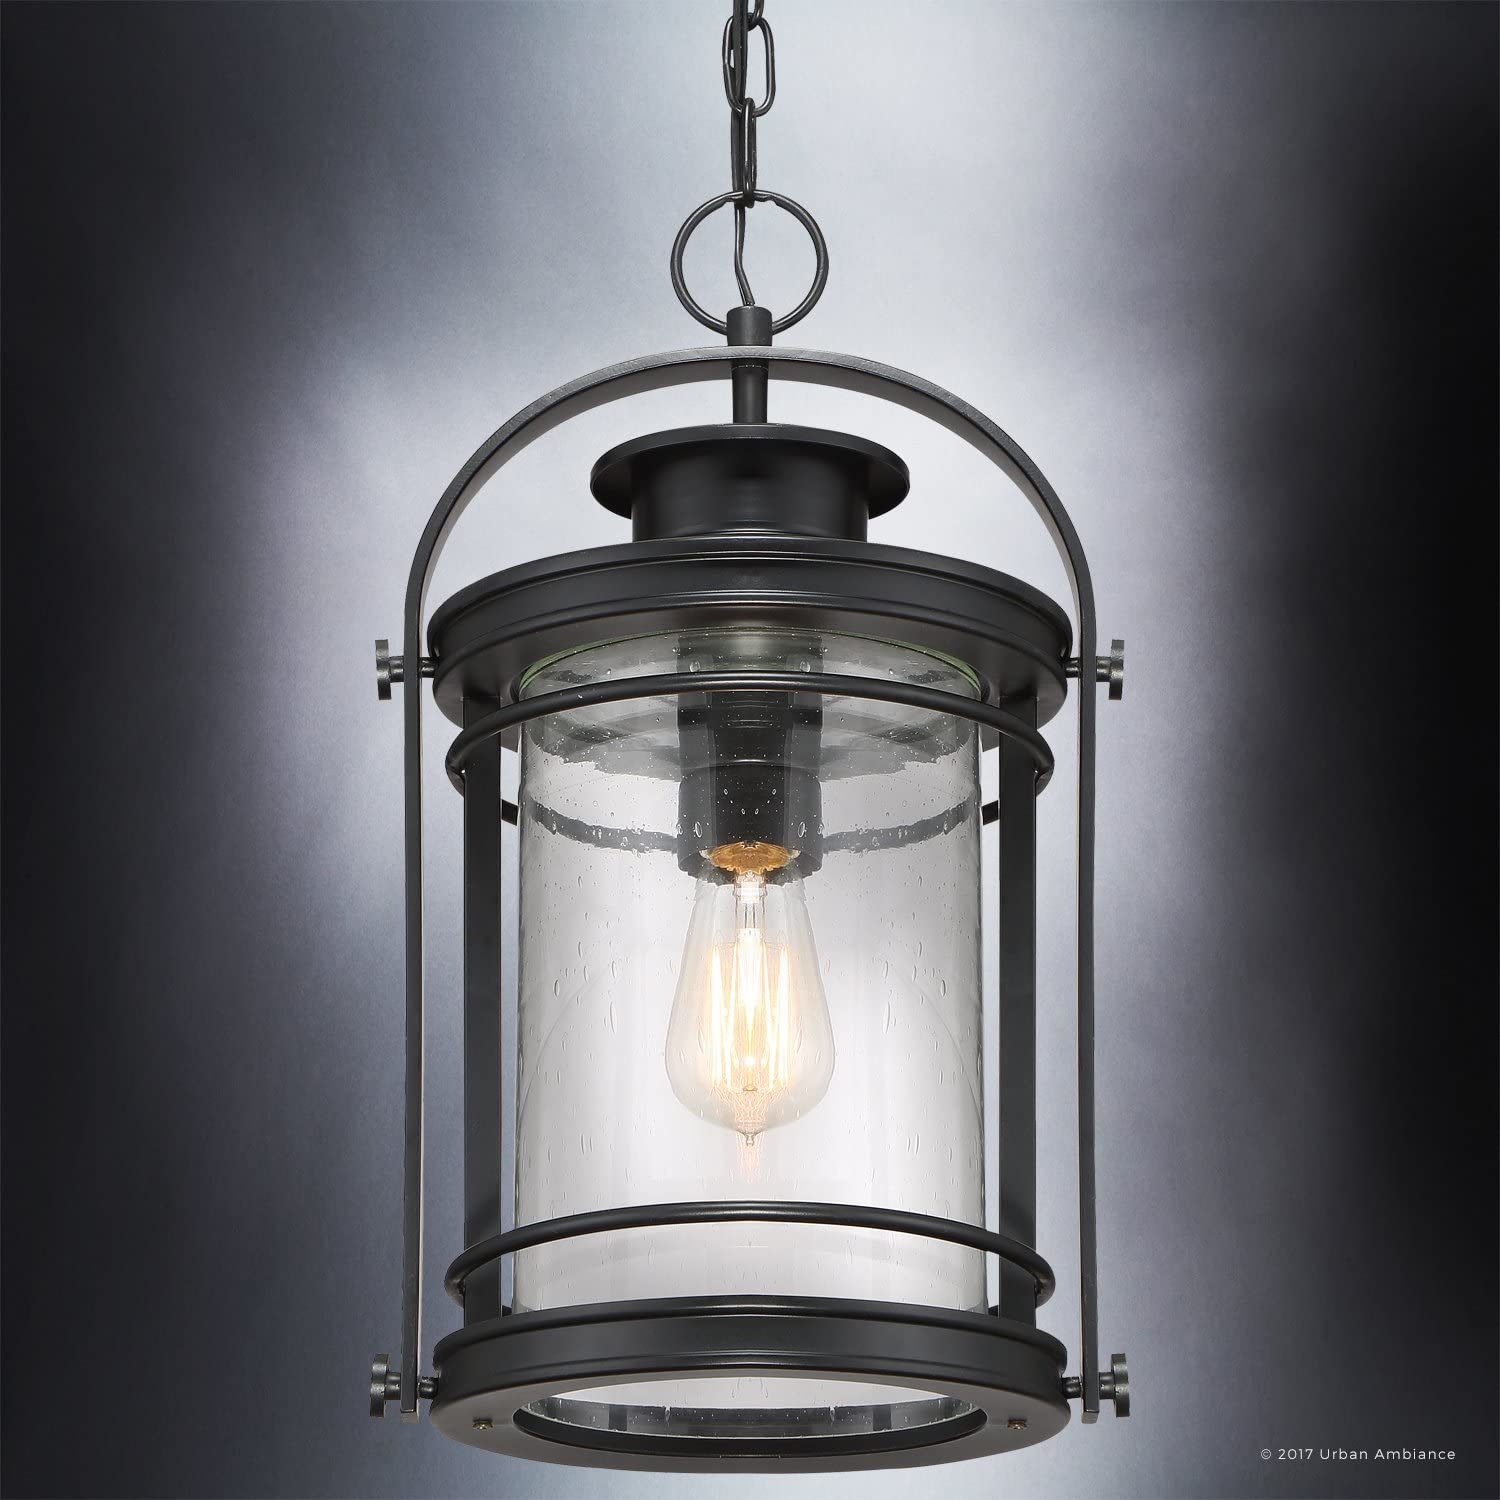 Luxury Midcentury Modern Outdoor Pendant Light Medium Size 18 H X 10 5 W With Craftsman Style Elements High End Black Silk Finish And Seeded Glass Includes Edison Bulb Uql1011 By Urban Ambiance Amazon Com